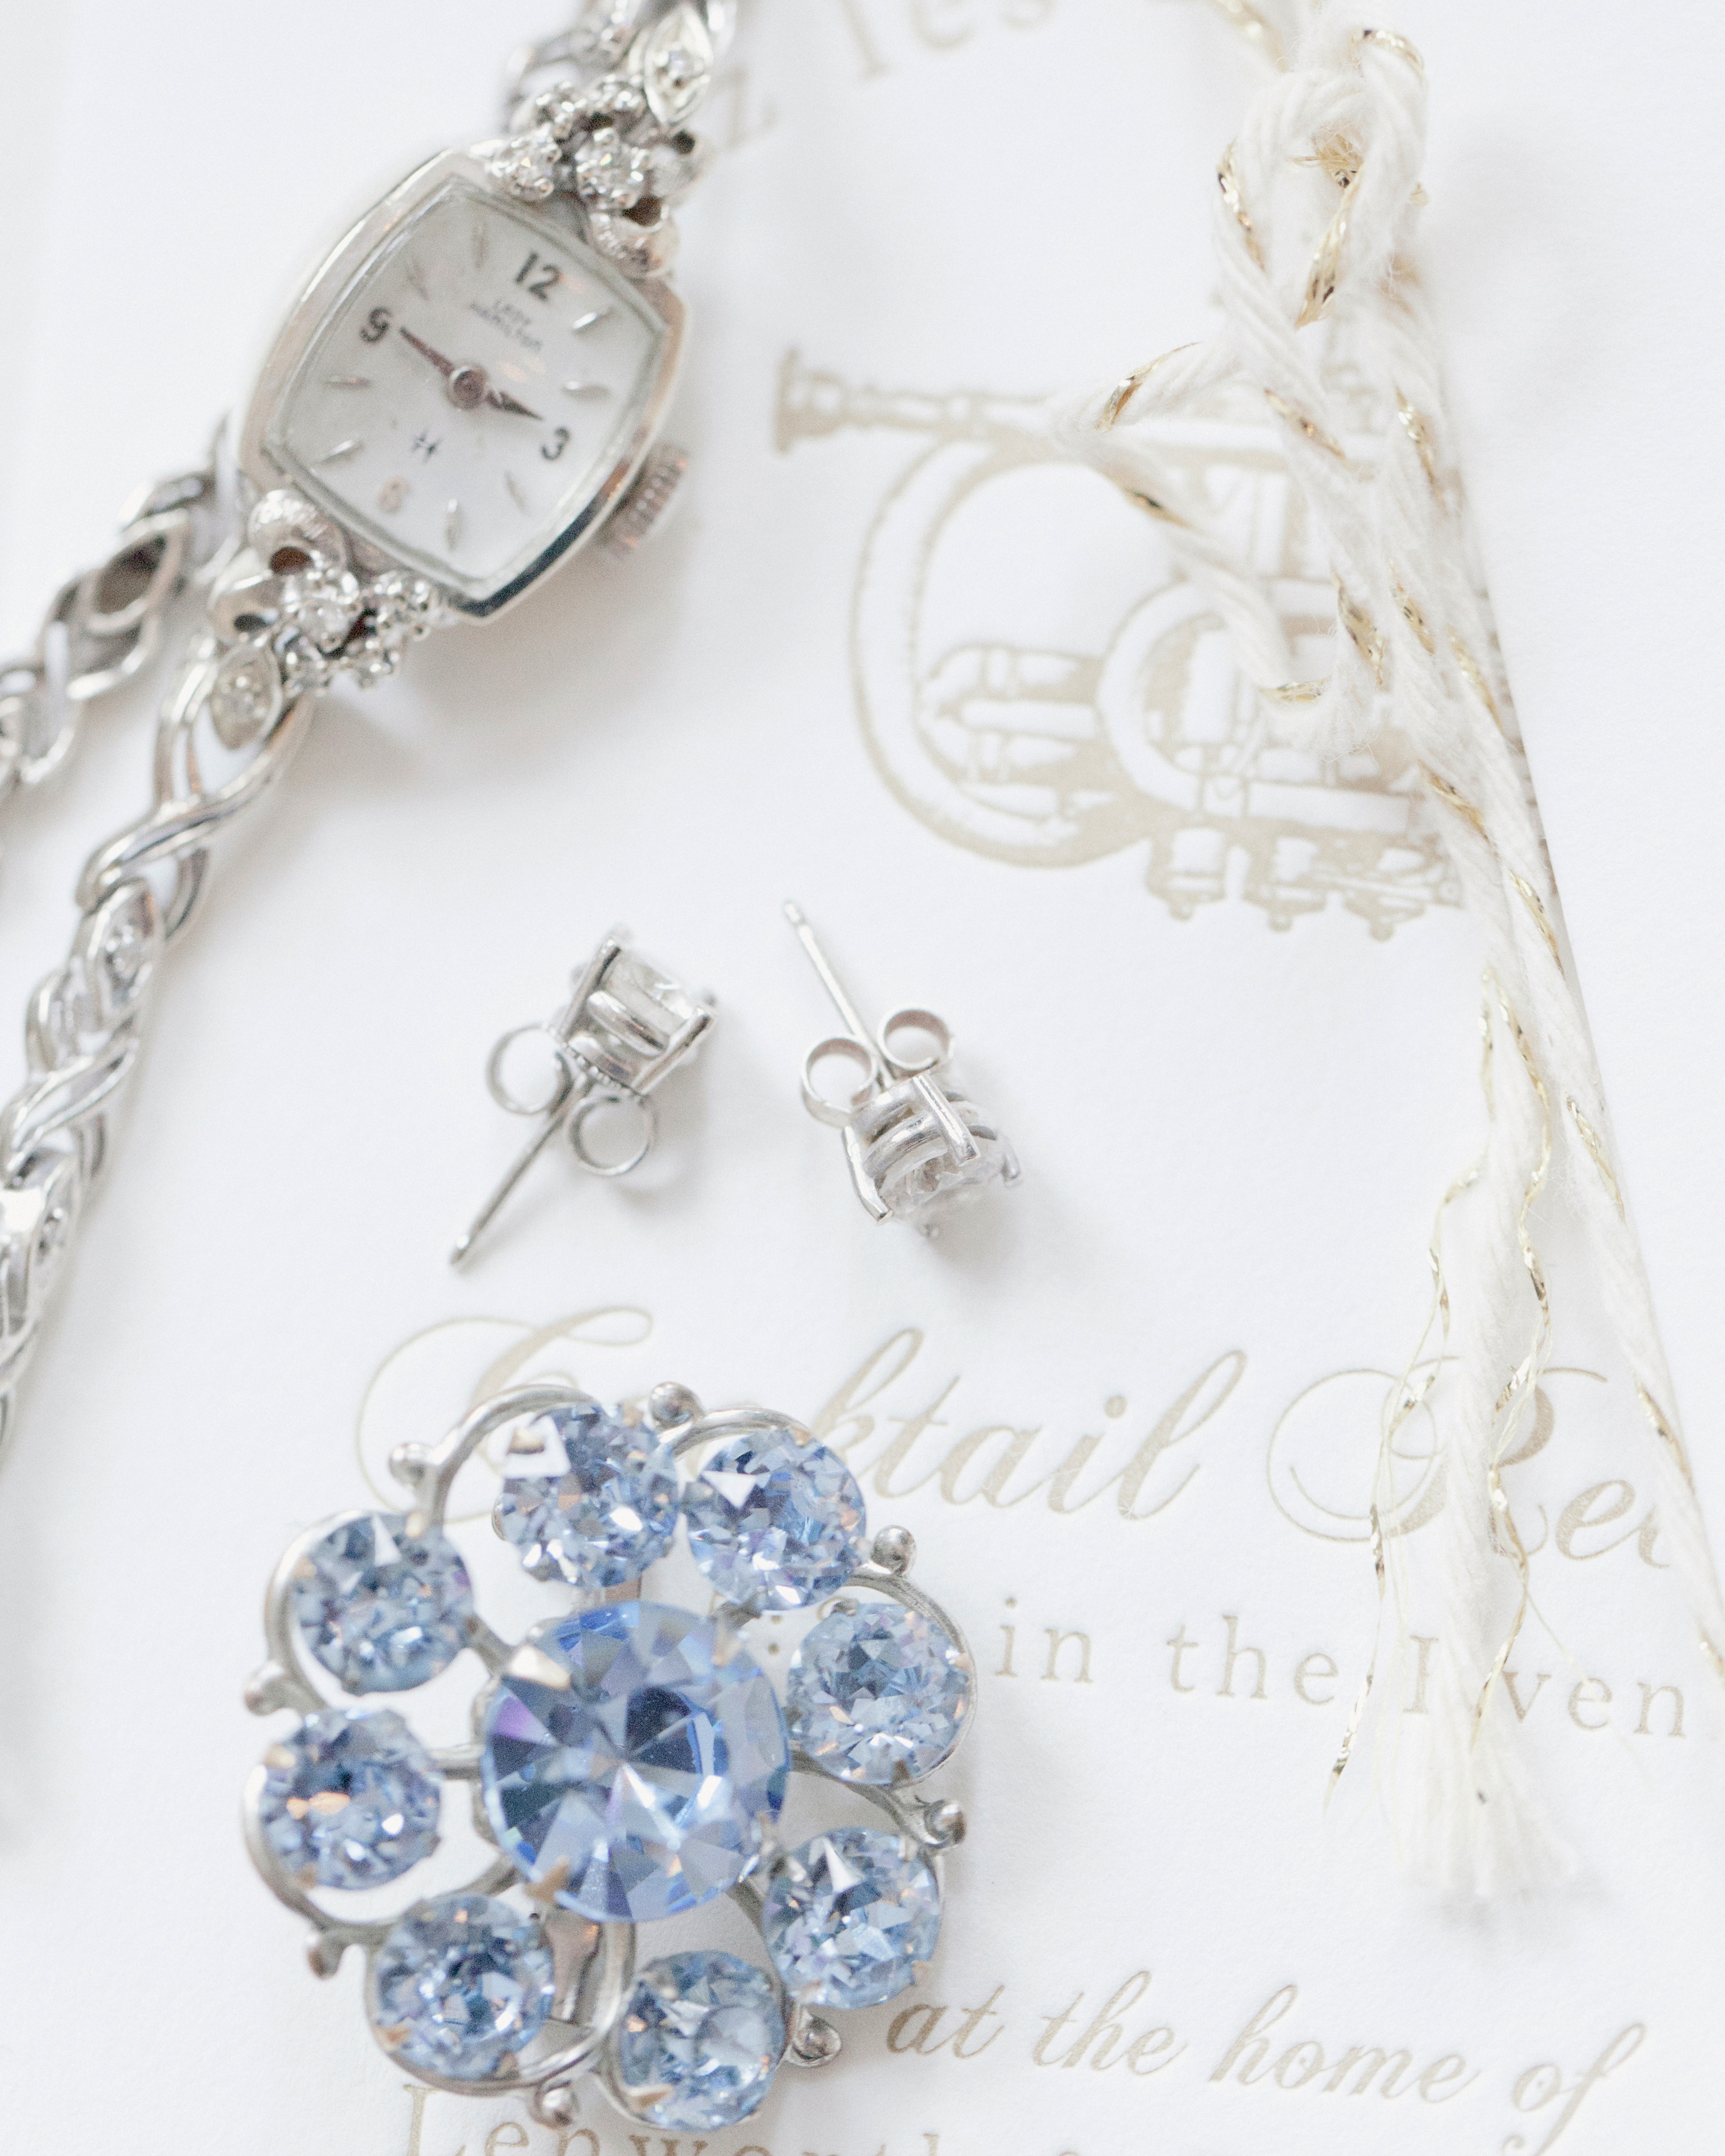 The Bride's Baubles